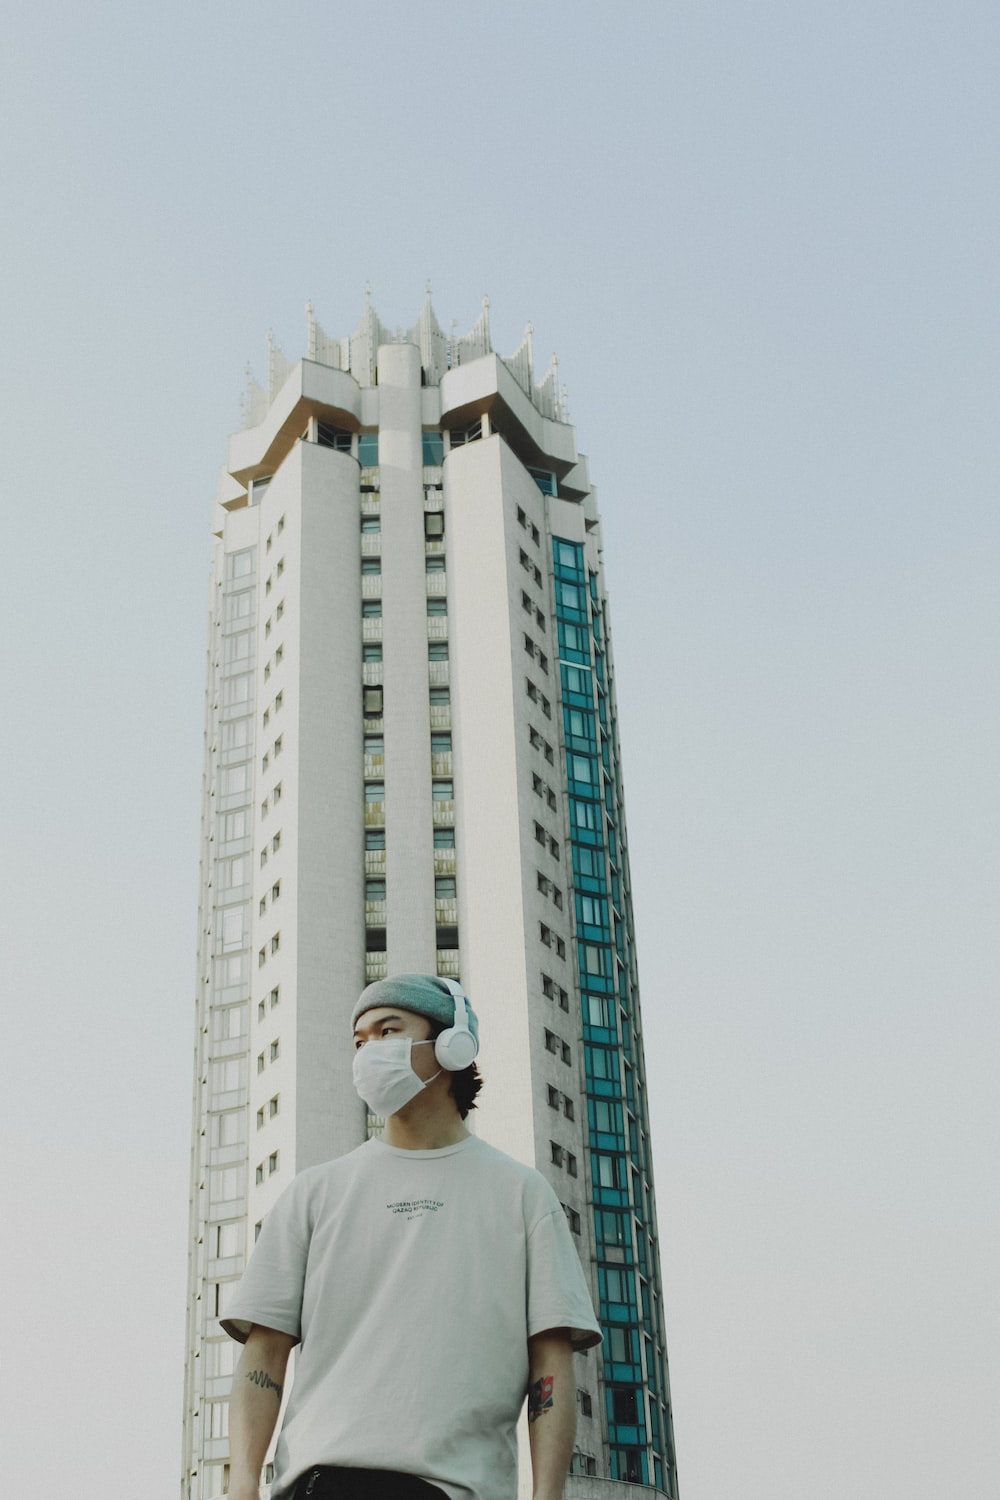 man in white shirt standing near high rise building during daytime